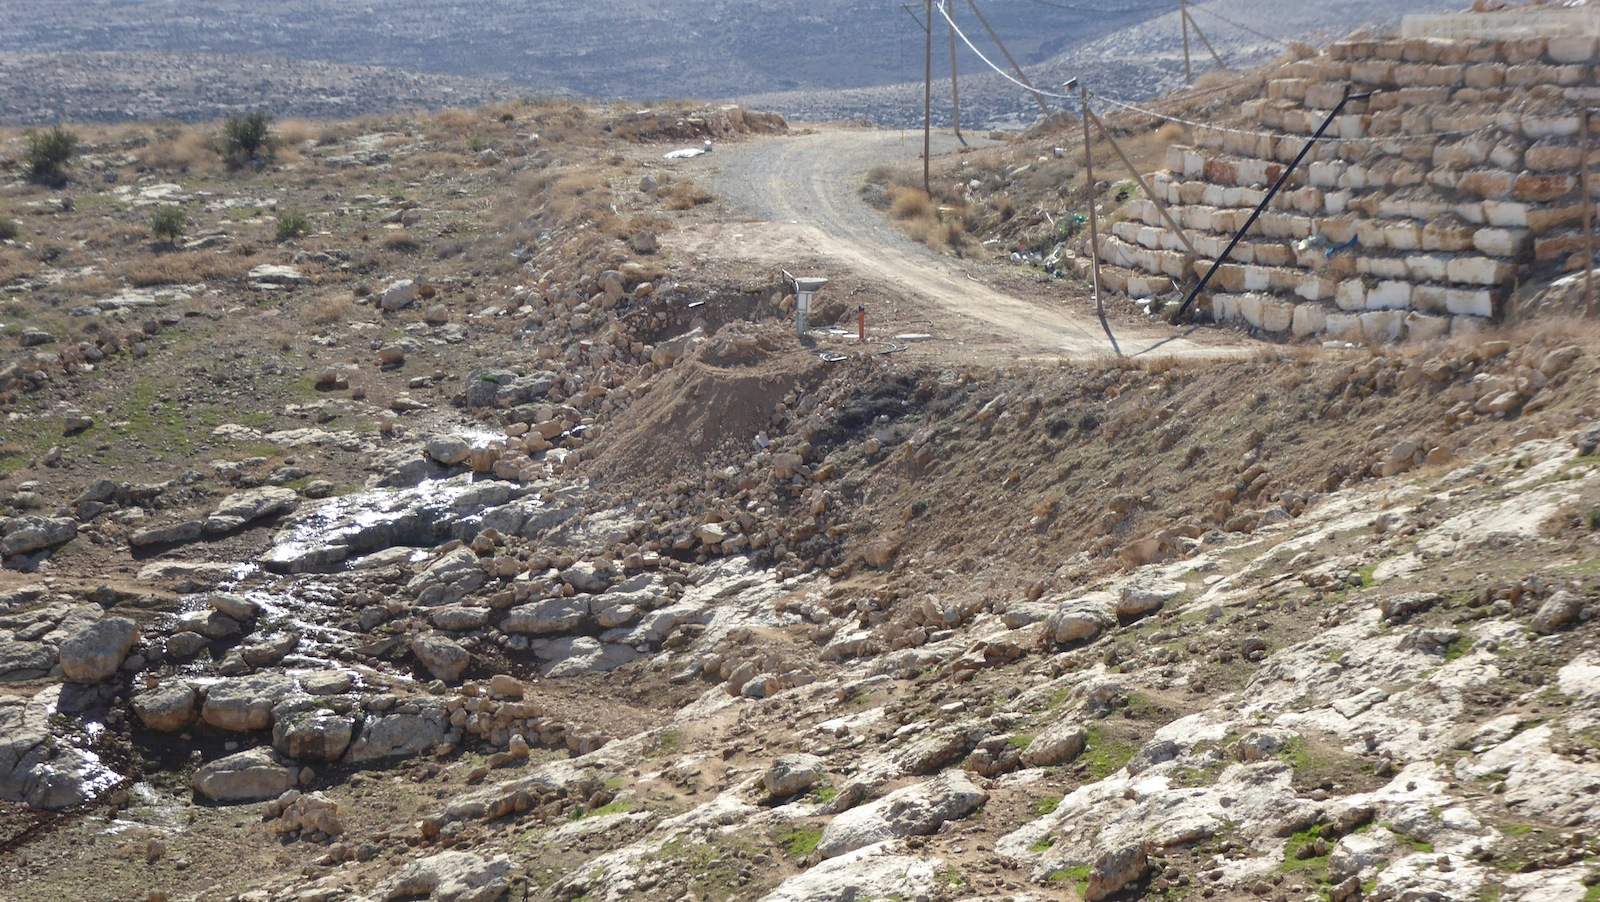 Karmel settlement's sewage system drains in the Palestinian farmland